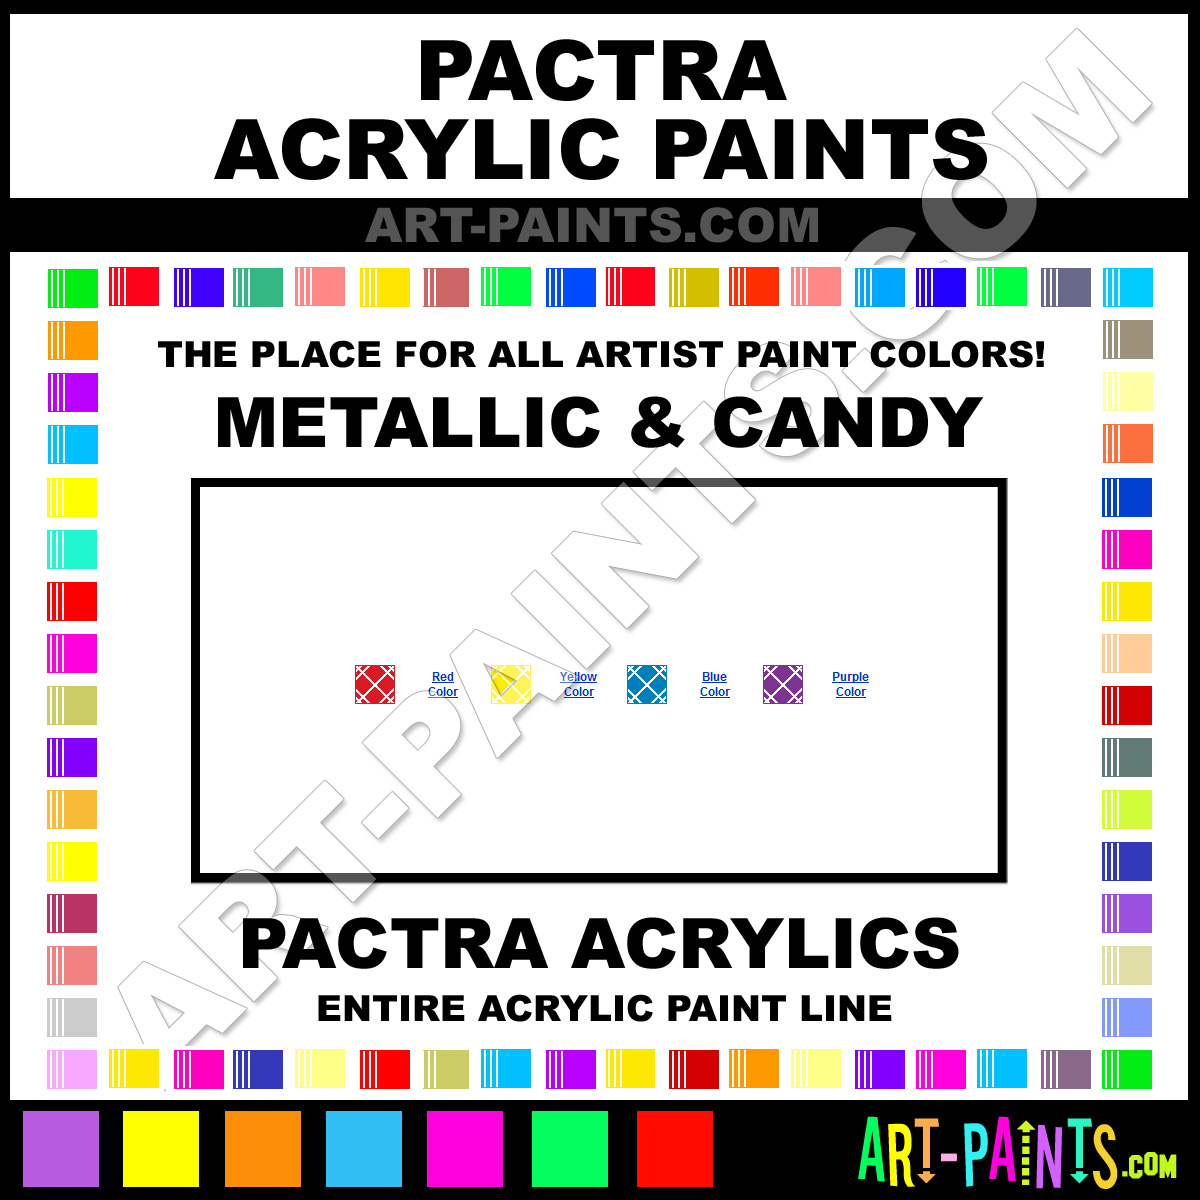 Pactra Acrylic Paint